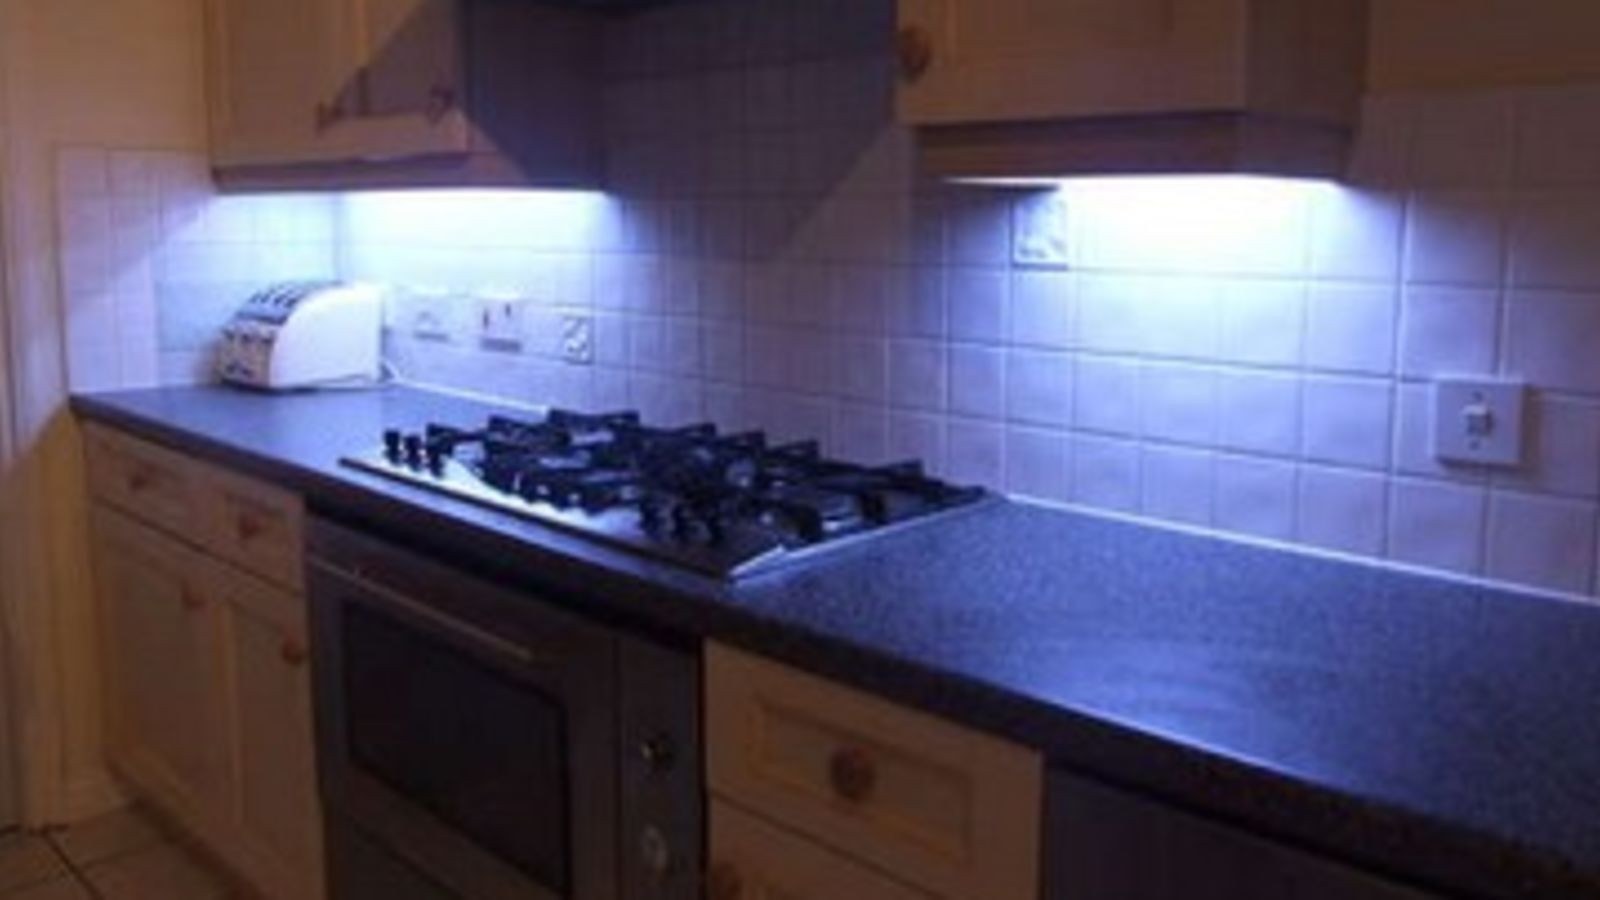 Best ideas about DIY Under Cabinet Led Lighting . Save or Pin DIY Under Cabinet LED Lighting with Fade Effects Now.